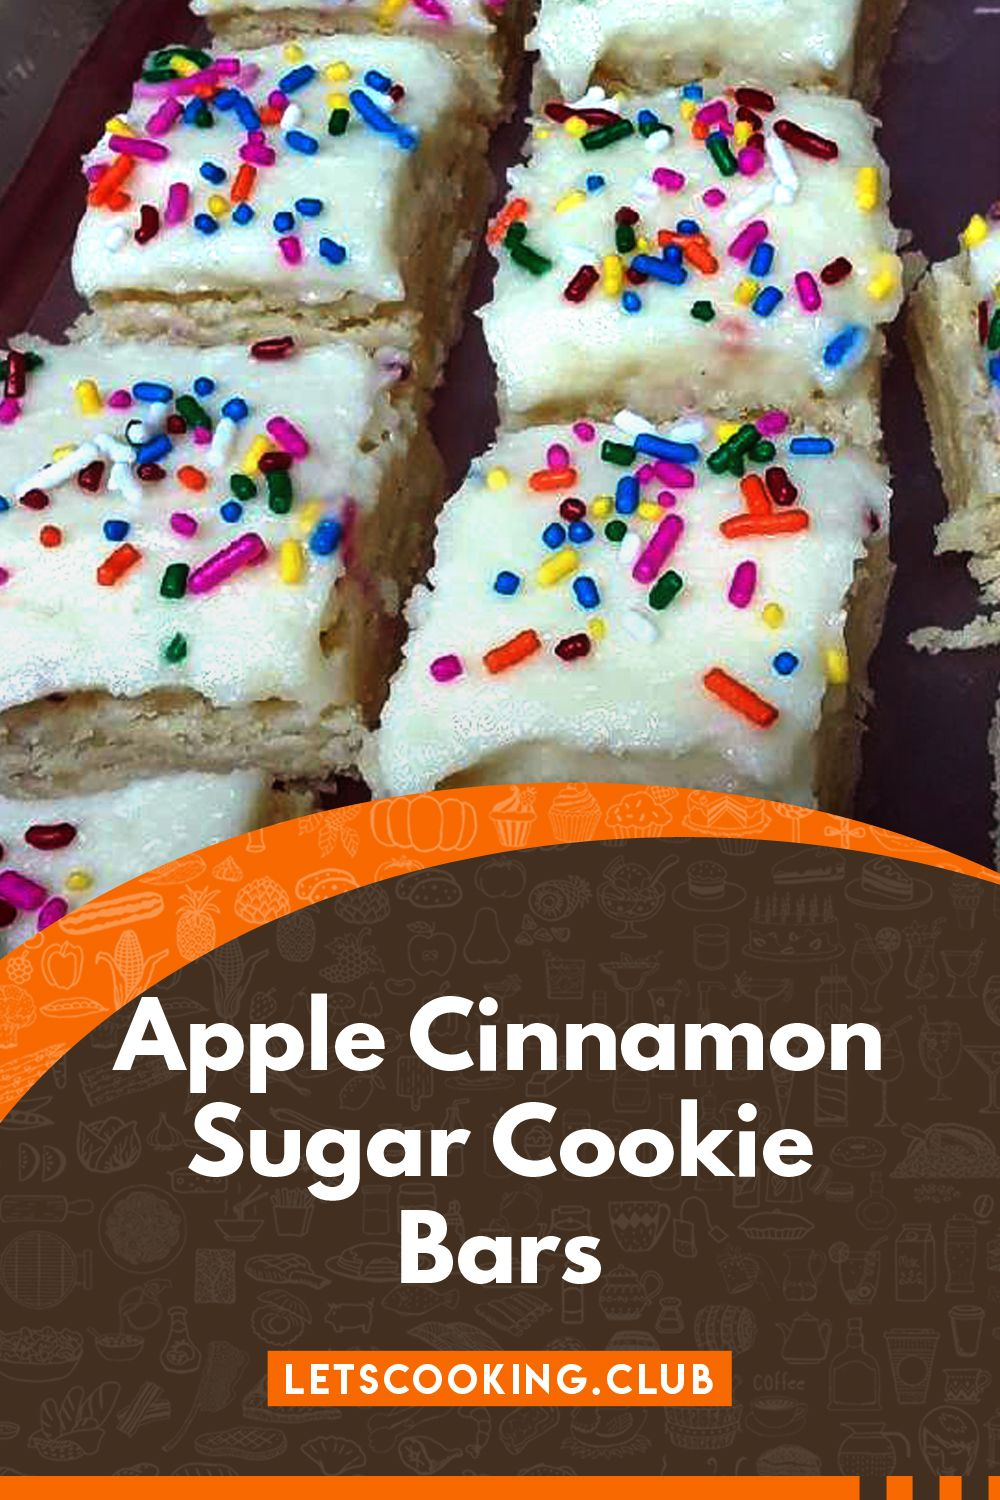 Apple Cinnamon Sugar Cookie Bars #cinnamonsugarcookies